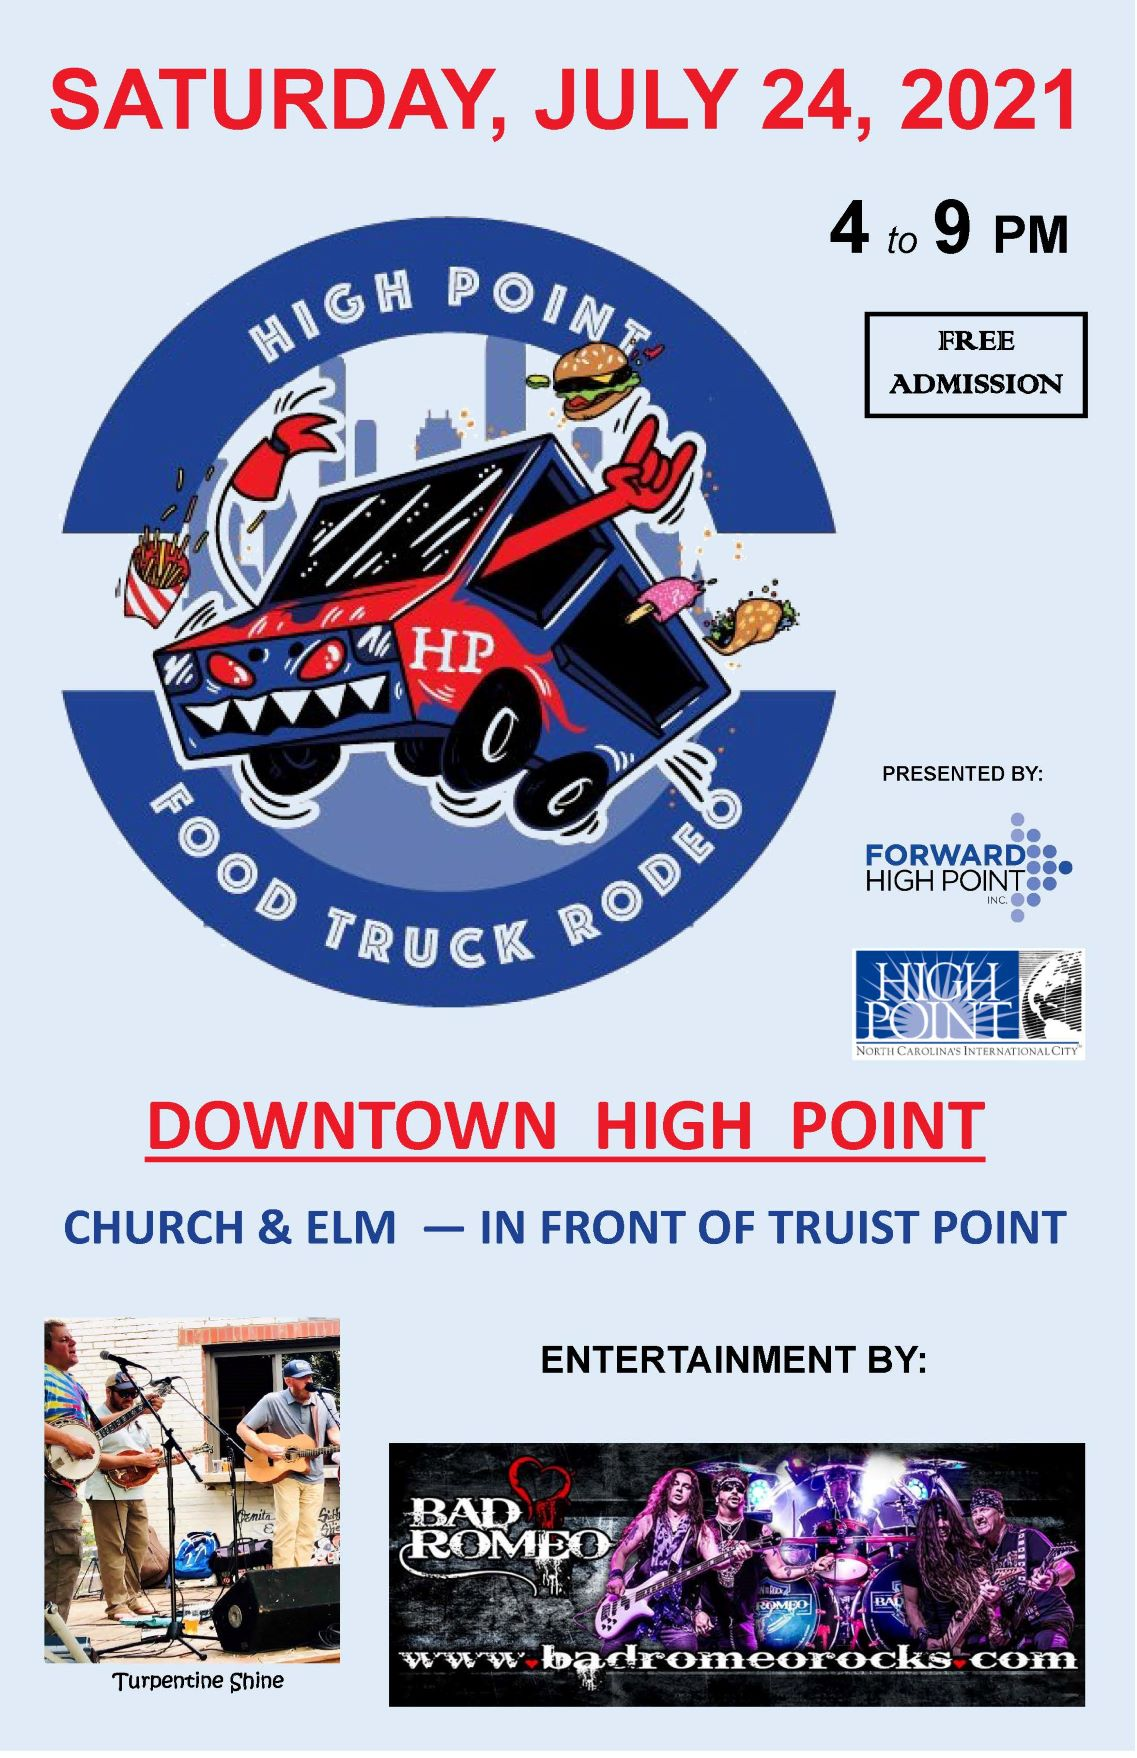 High Point - Food Truck Rodeo